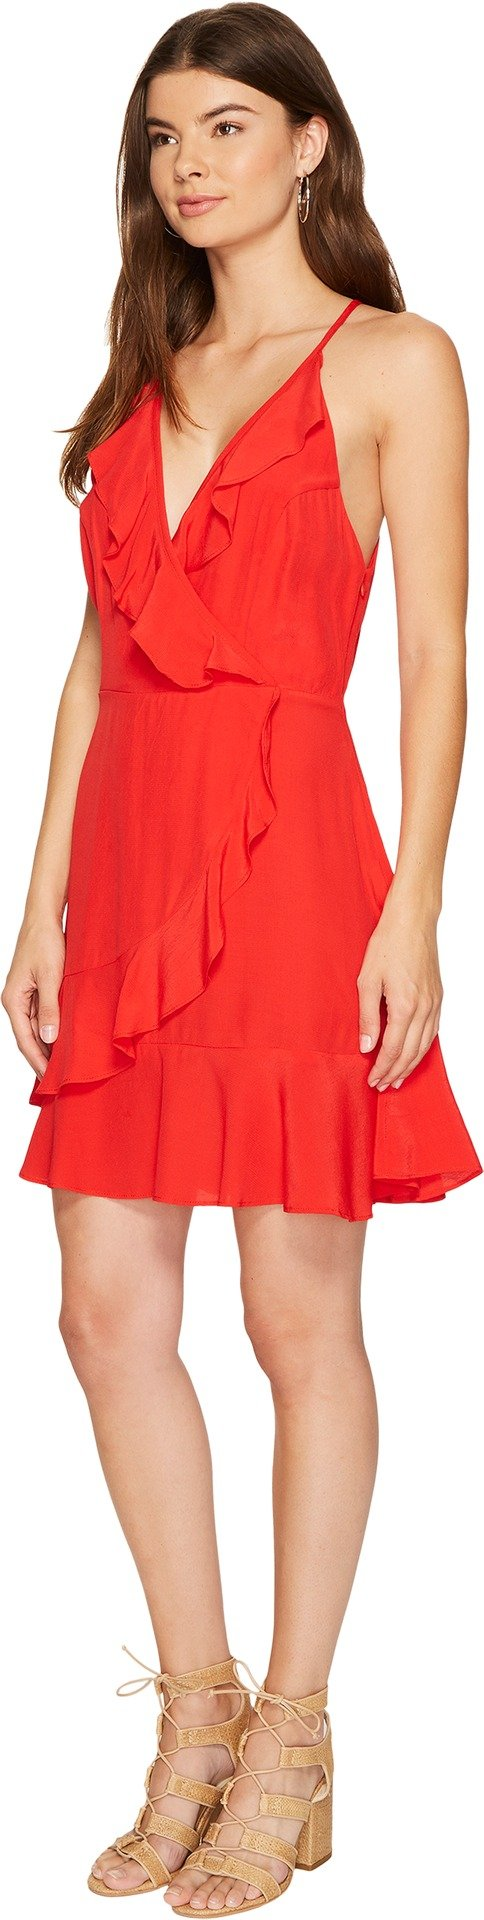 Lucy Love Women's Up All Night Dress Hot Tamale Dress by Lucy Love (Image #2)